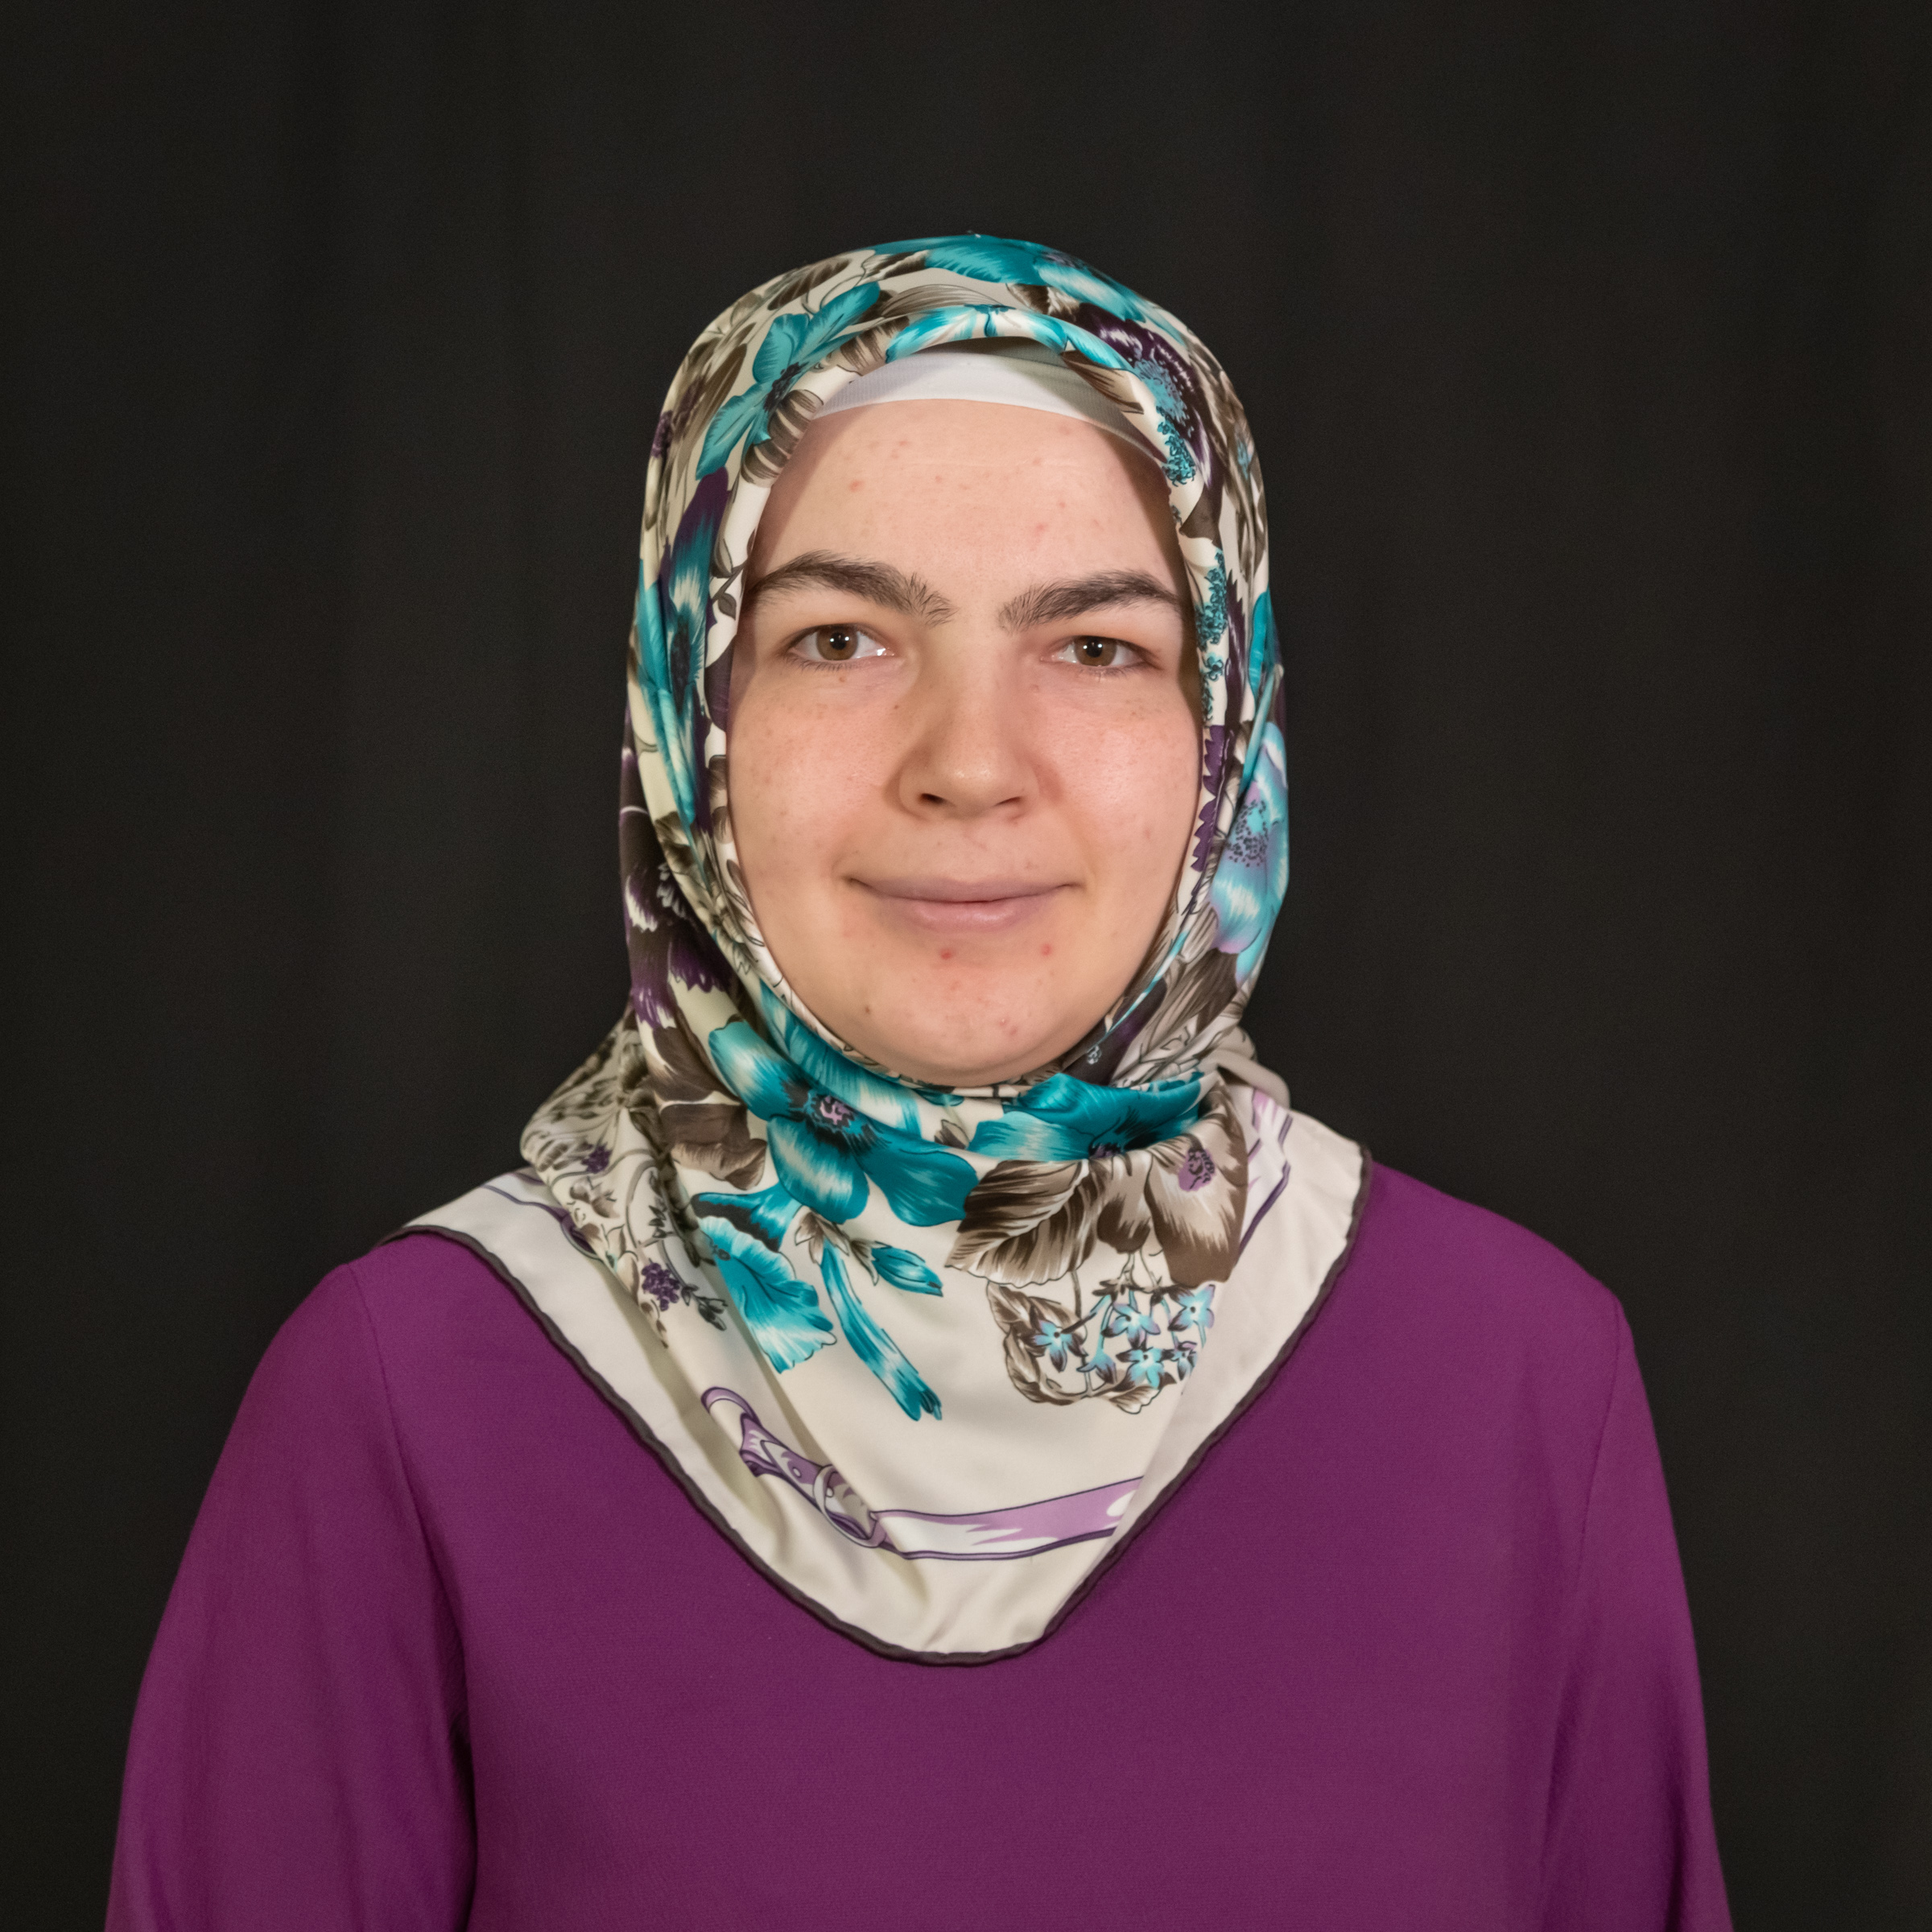 Dr. Akbas - Received FY 21 ASR+1 - Grace Hopper faculty scholar 2019